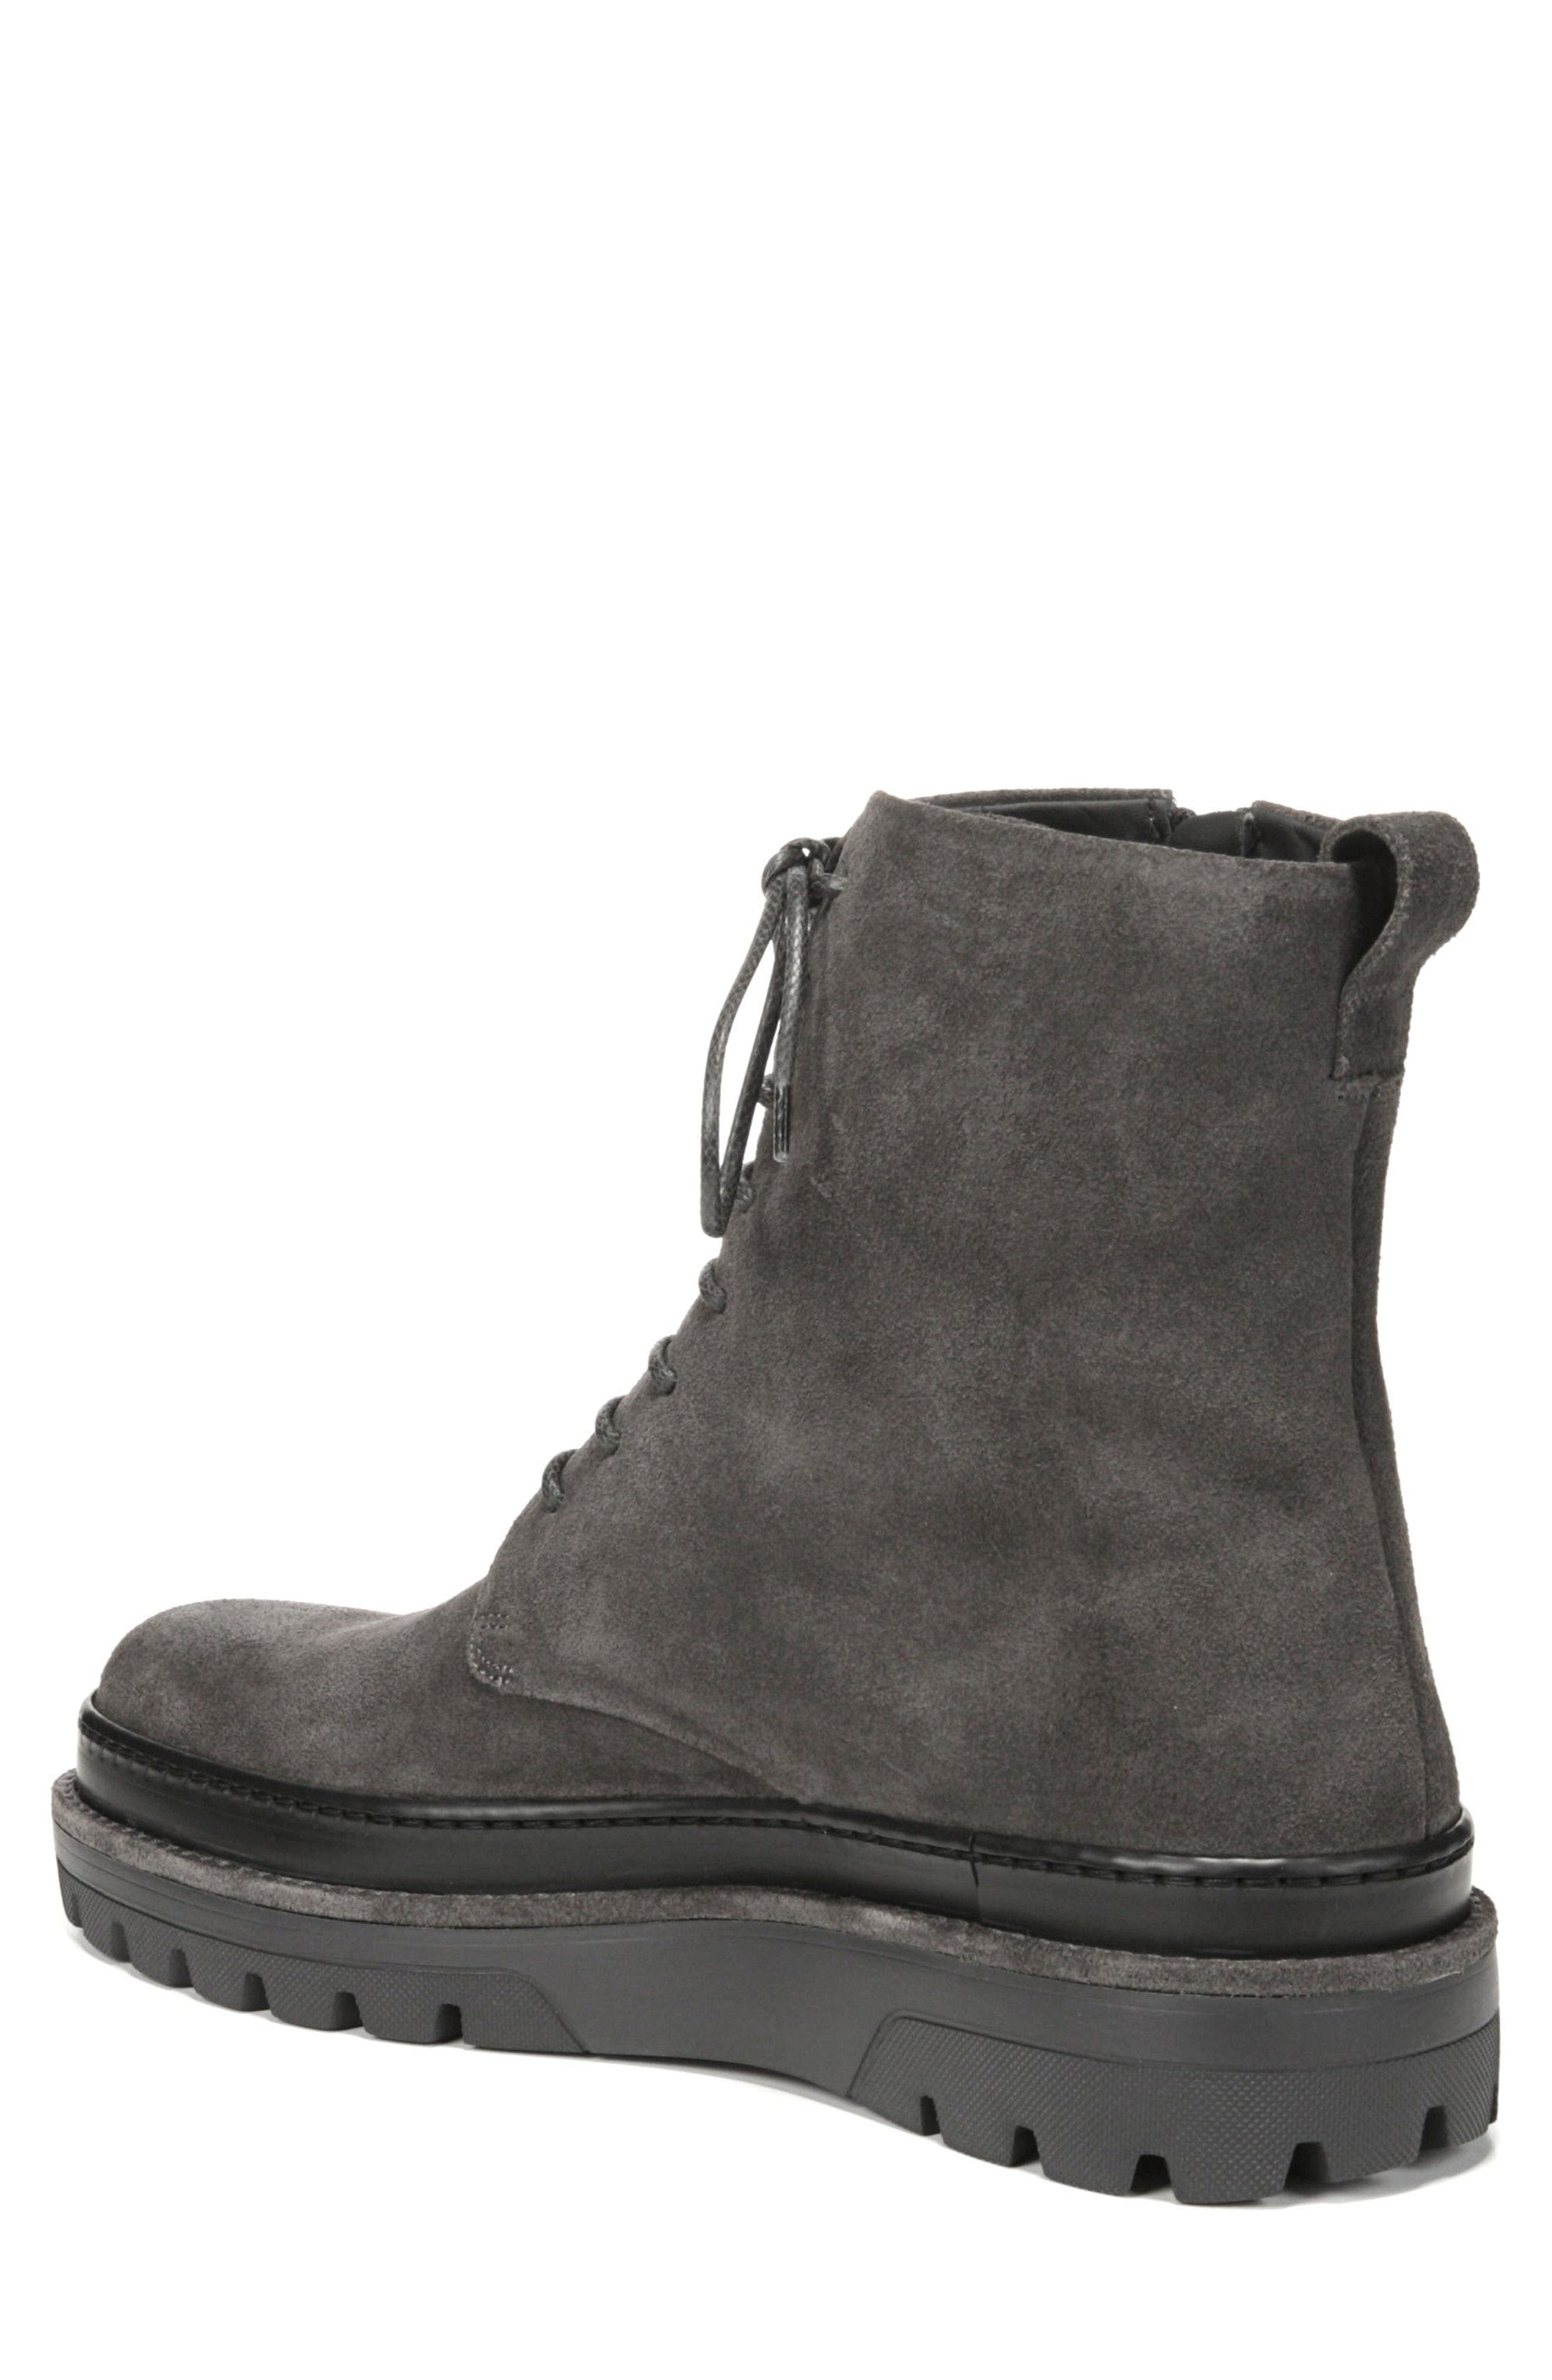 Edgar Plain Toe Boot,                             Alternate thumbnail 6, color,